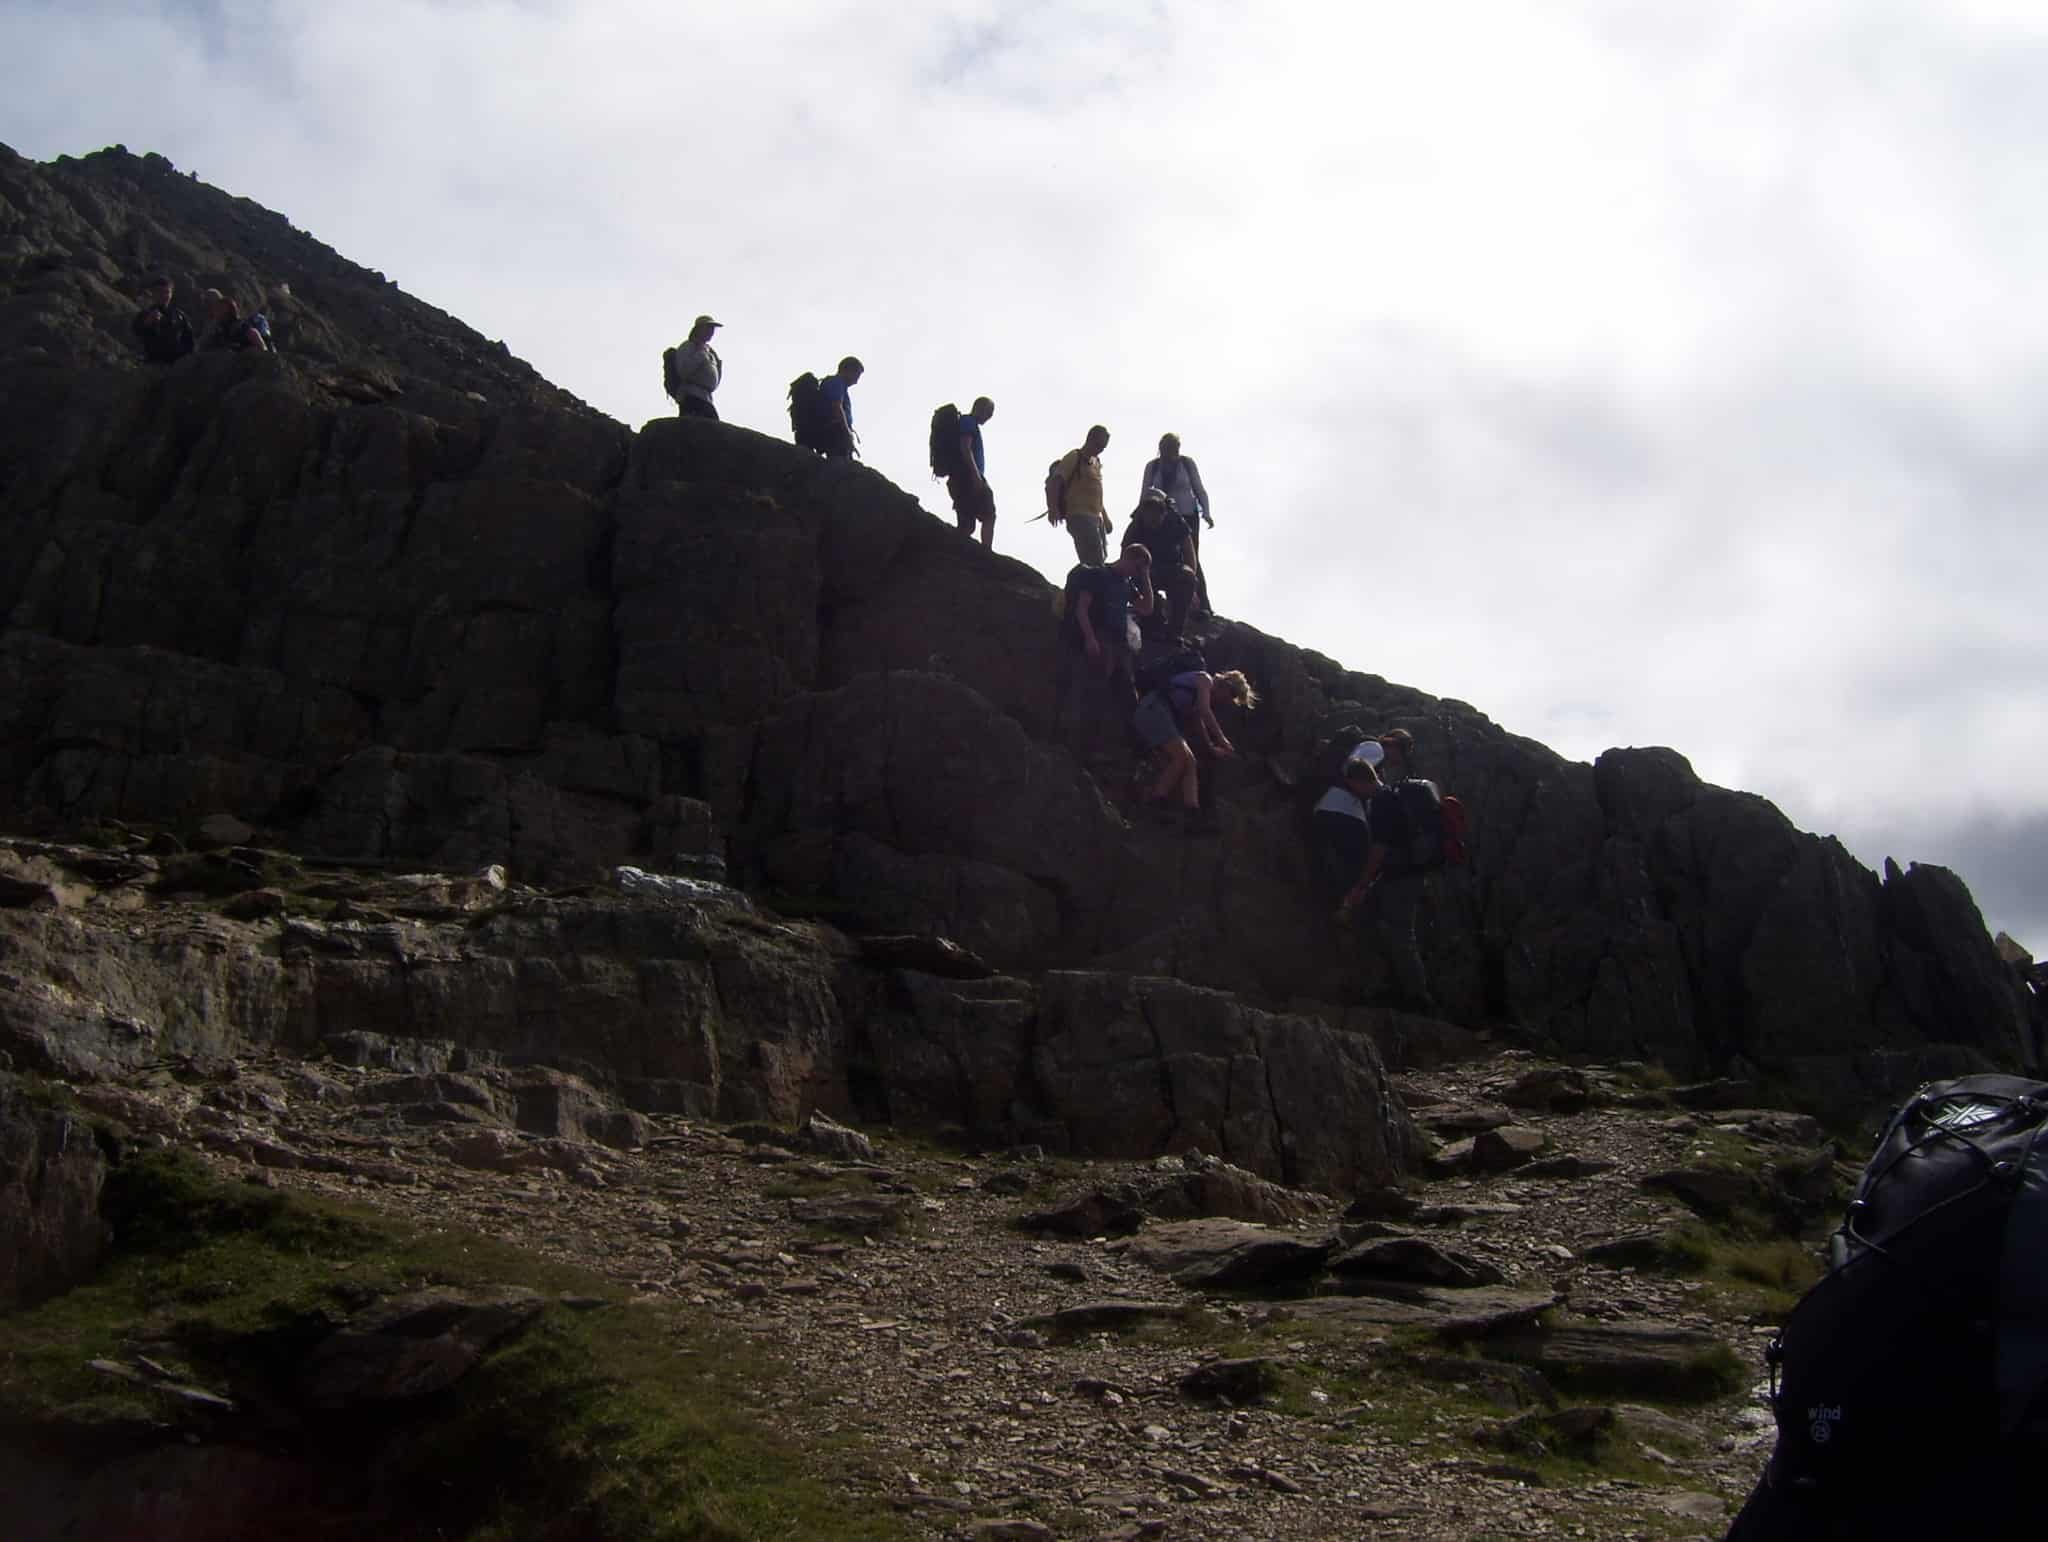 SNOWDONIA NIGHT TREK AUGUST 2020